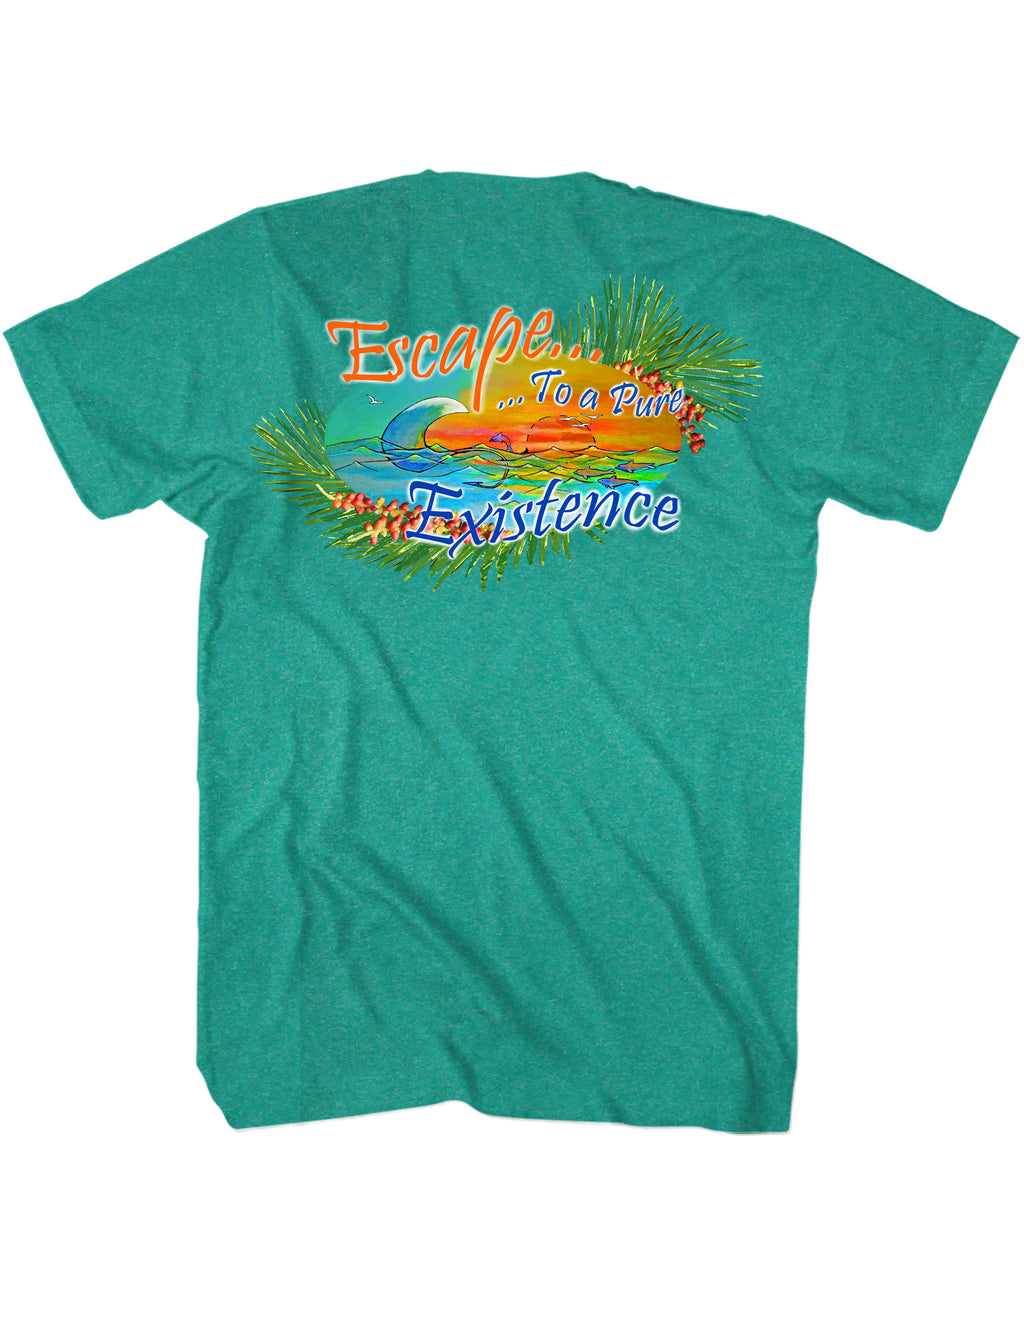 Escape to a Pure Existence Palms T-Shirt Back Design